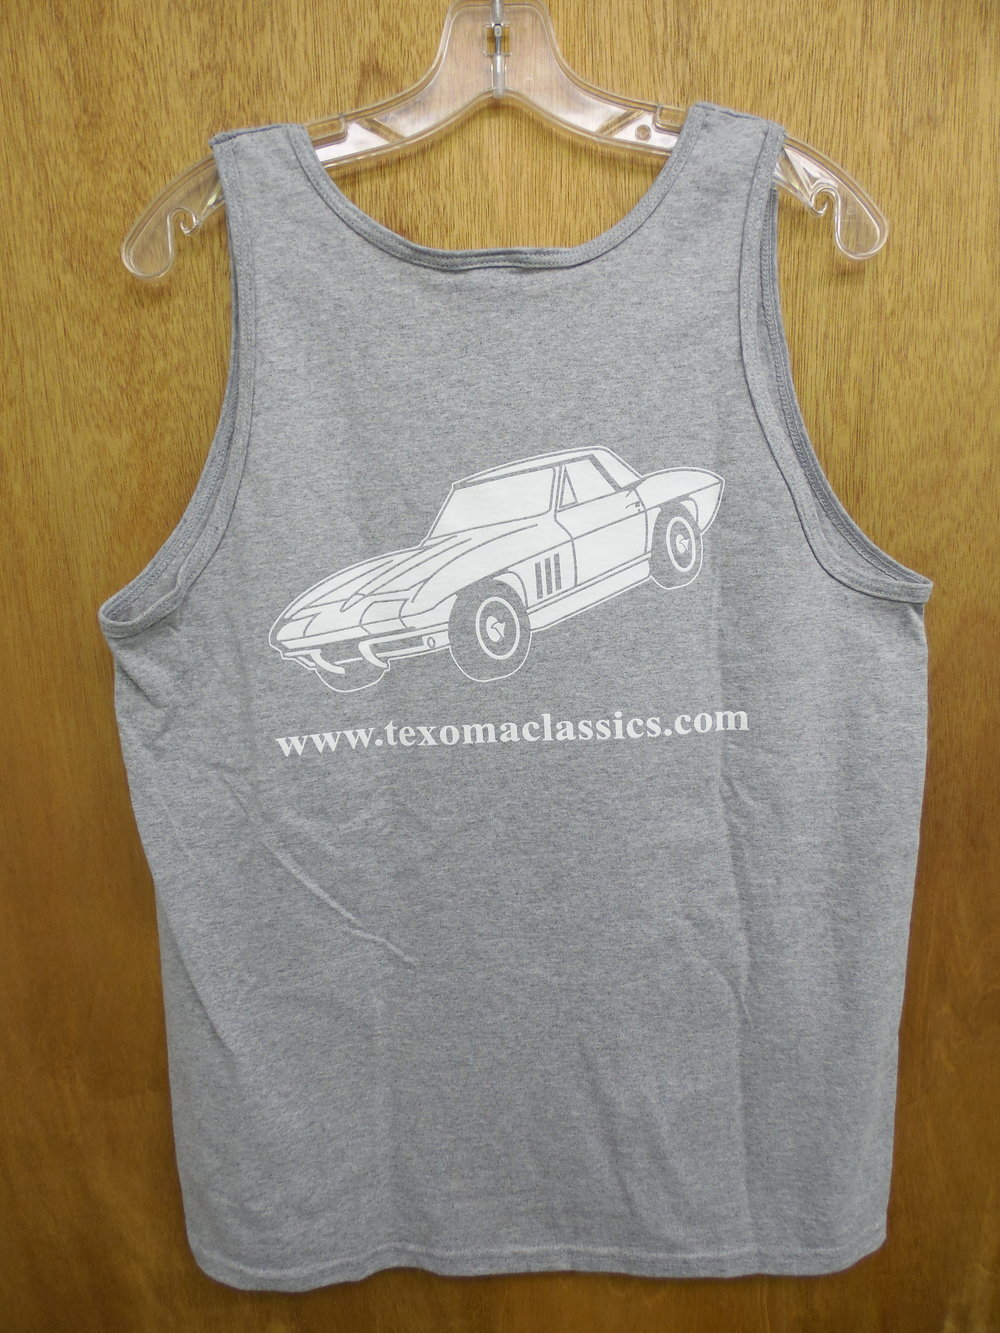 Back of the Texoma Classics gray mens tank